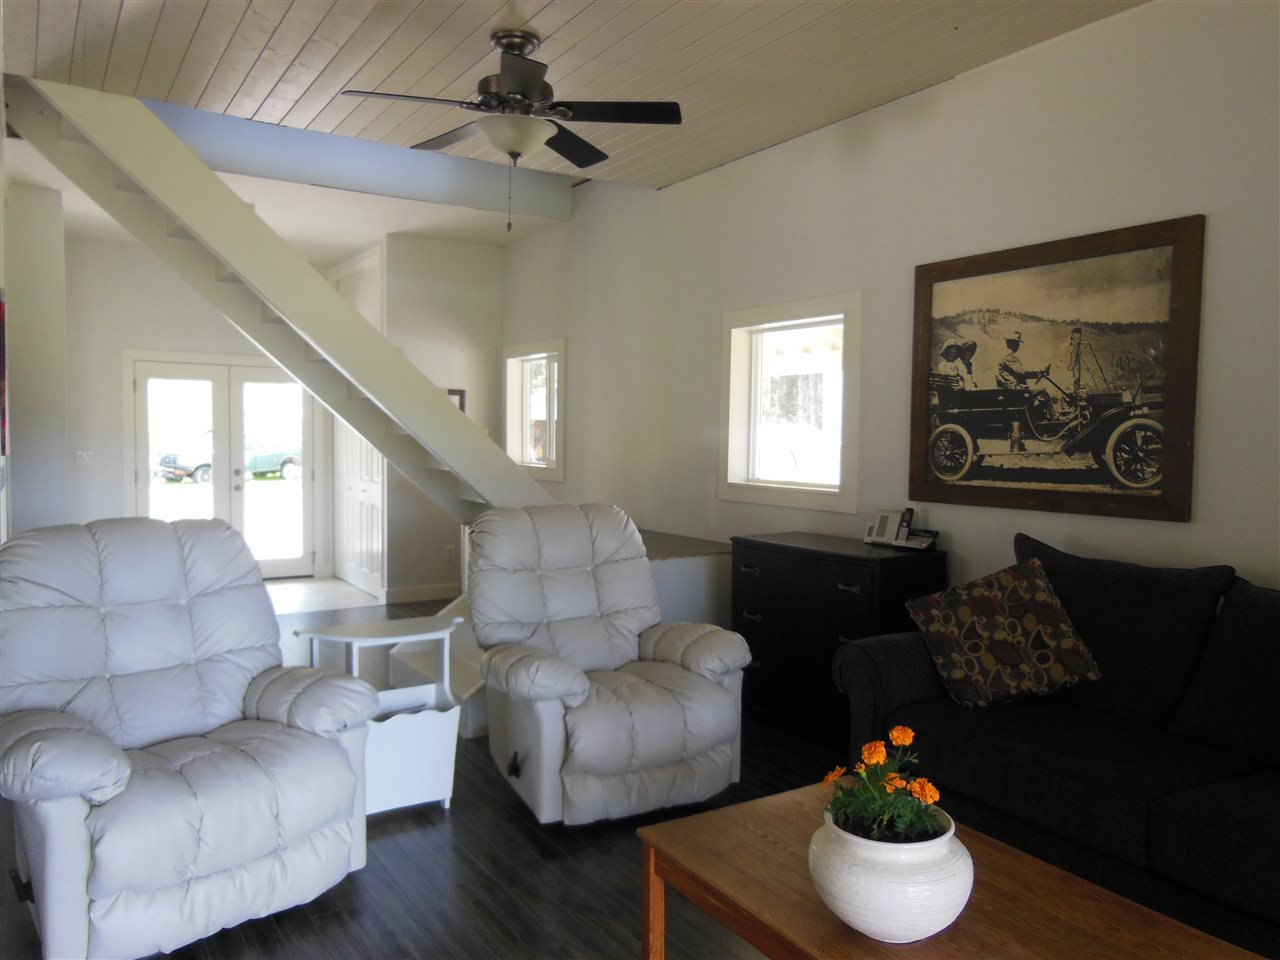 Photo 7: Photos: 3535 WESTWICK PIT Road: 150 Mile House House for sale (Williams Lake (Zone 27))  : MLS®# R2488772